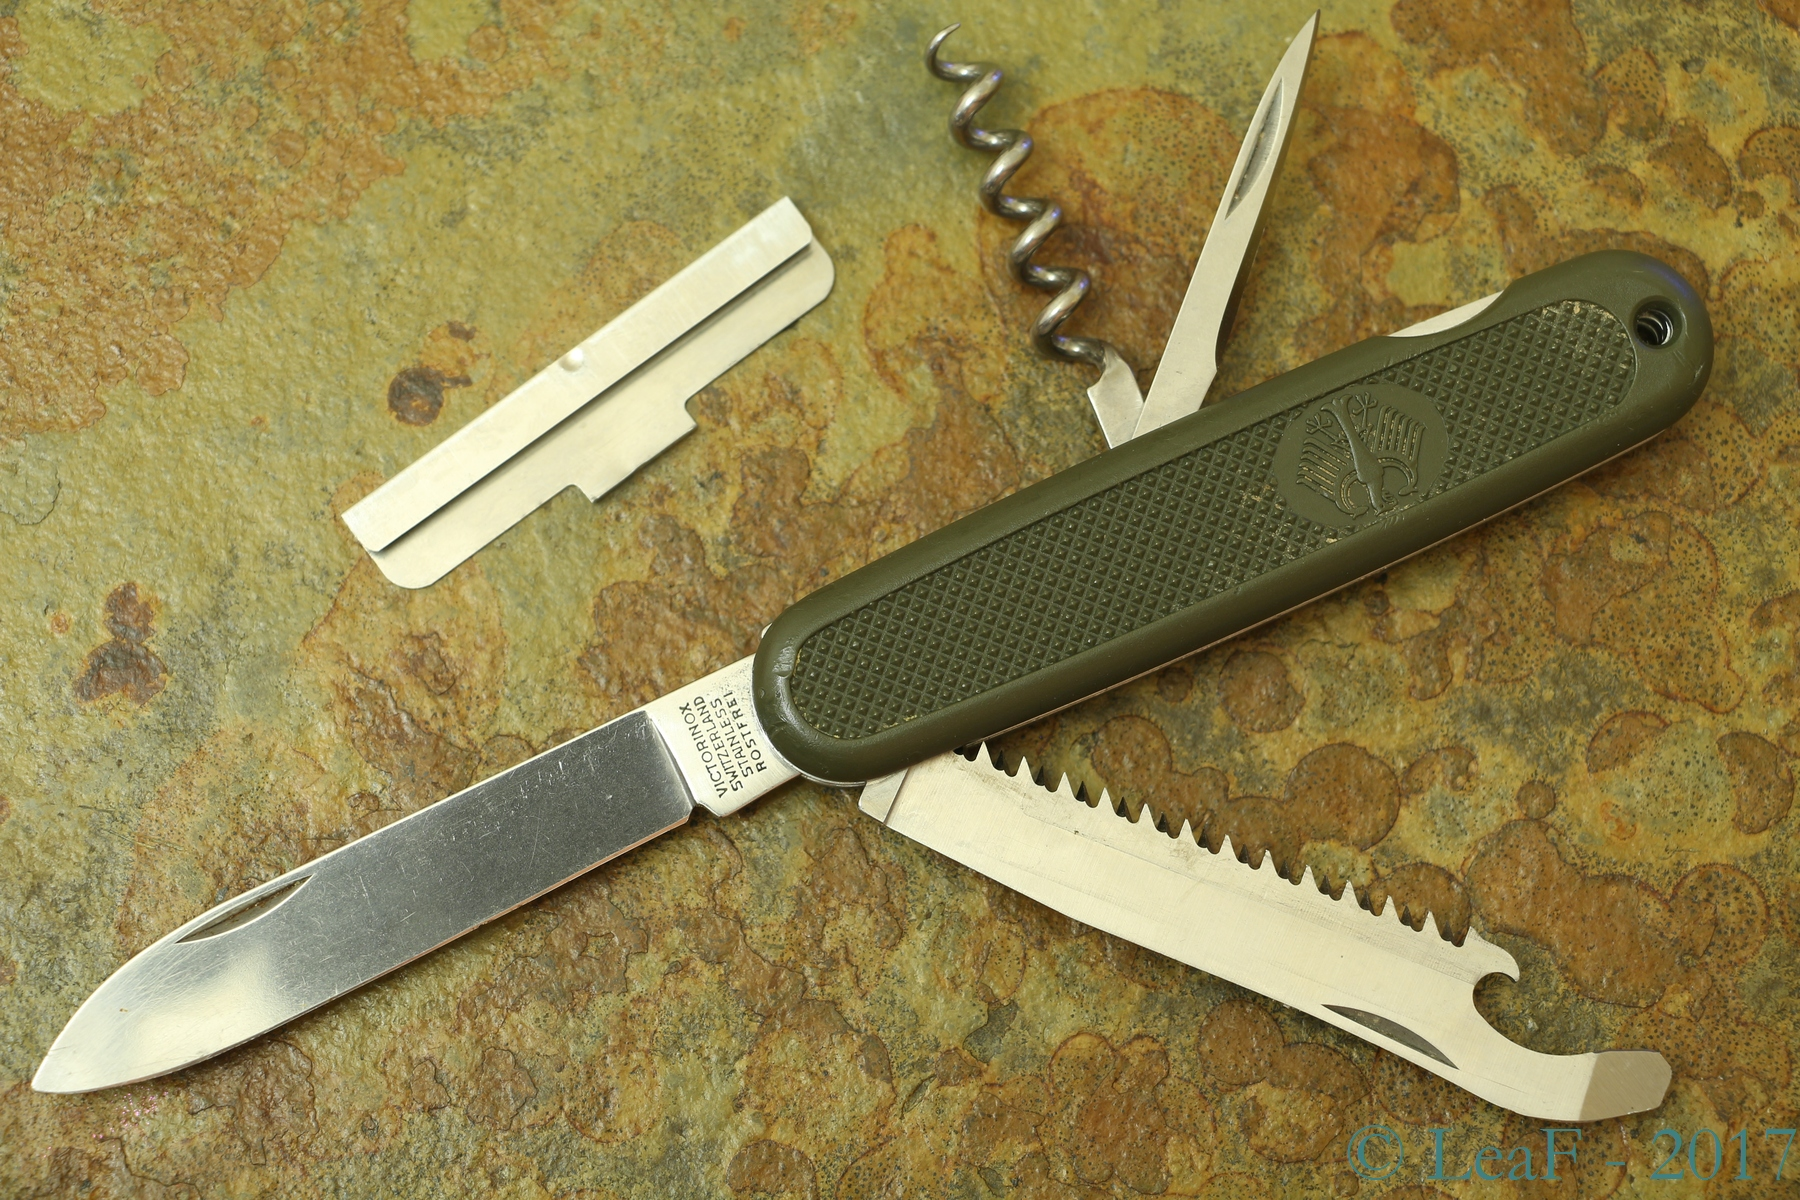 056 Gak 108 Leaf S Victorinox Knives Collection